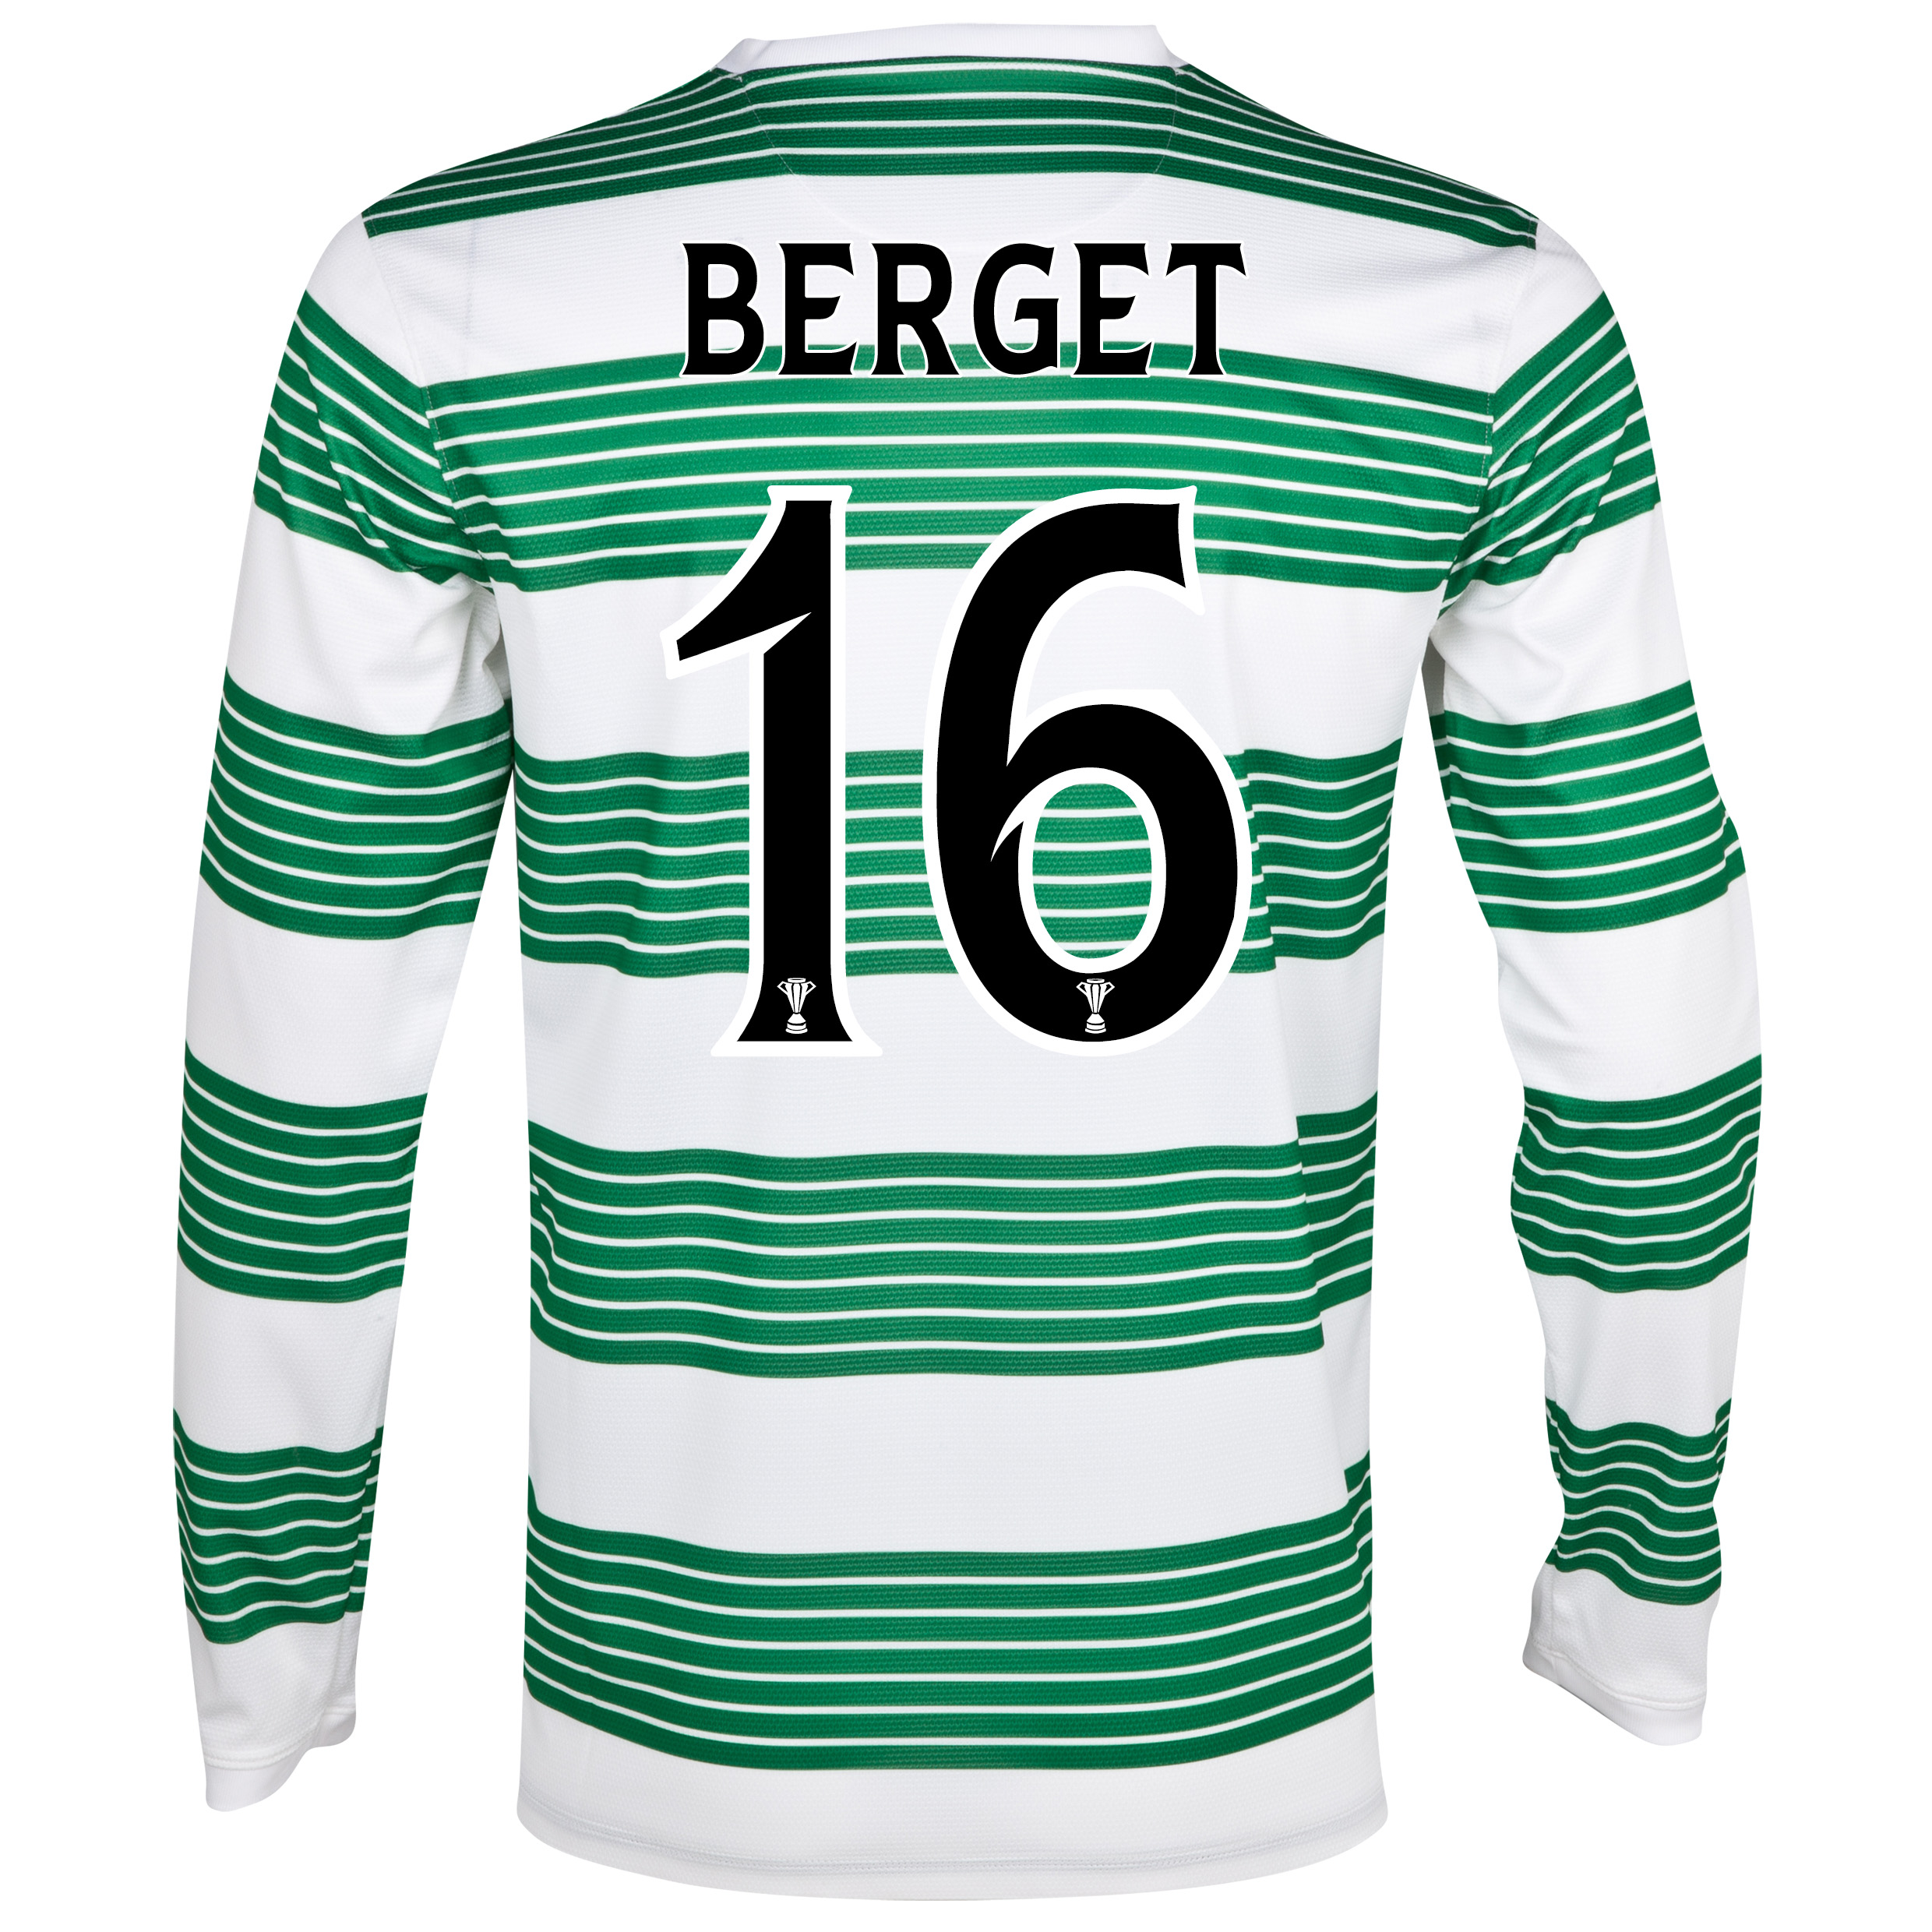 Celtic Home Shirt 2013/15 - L/S- With Sponsor with Berget 16 printing